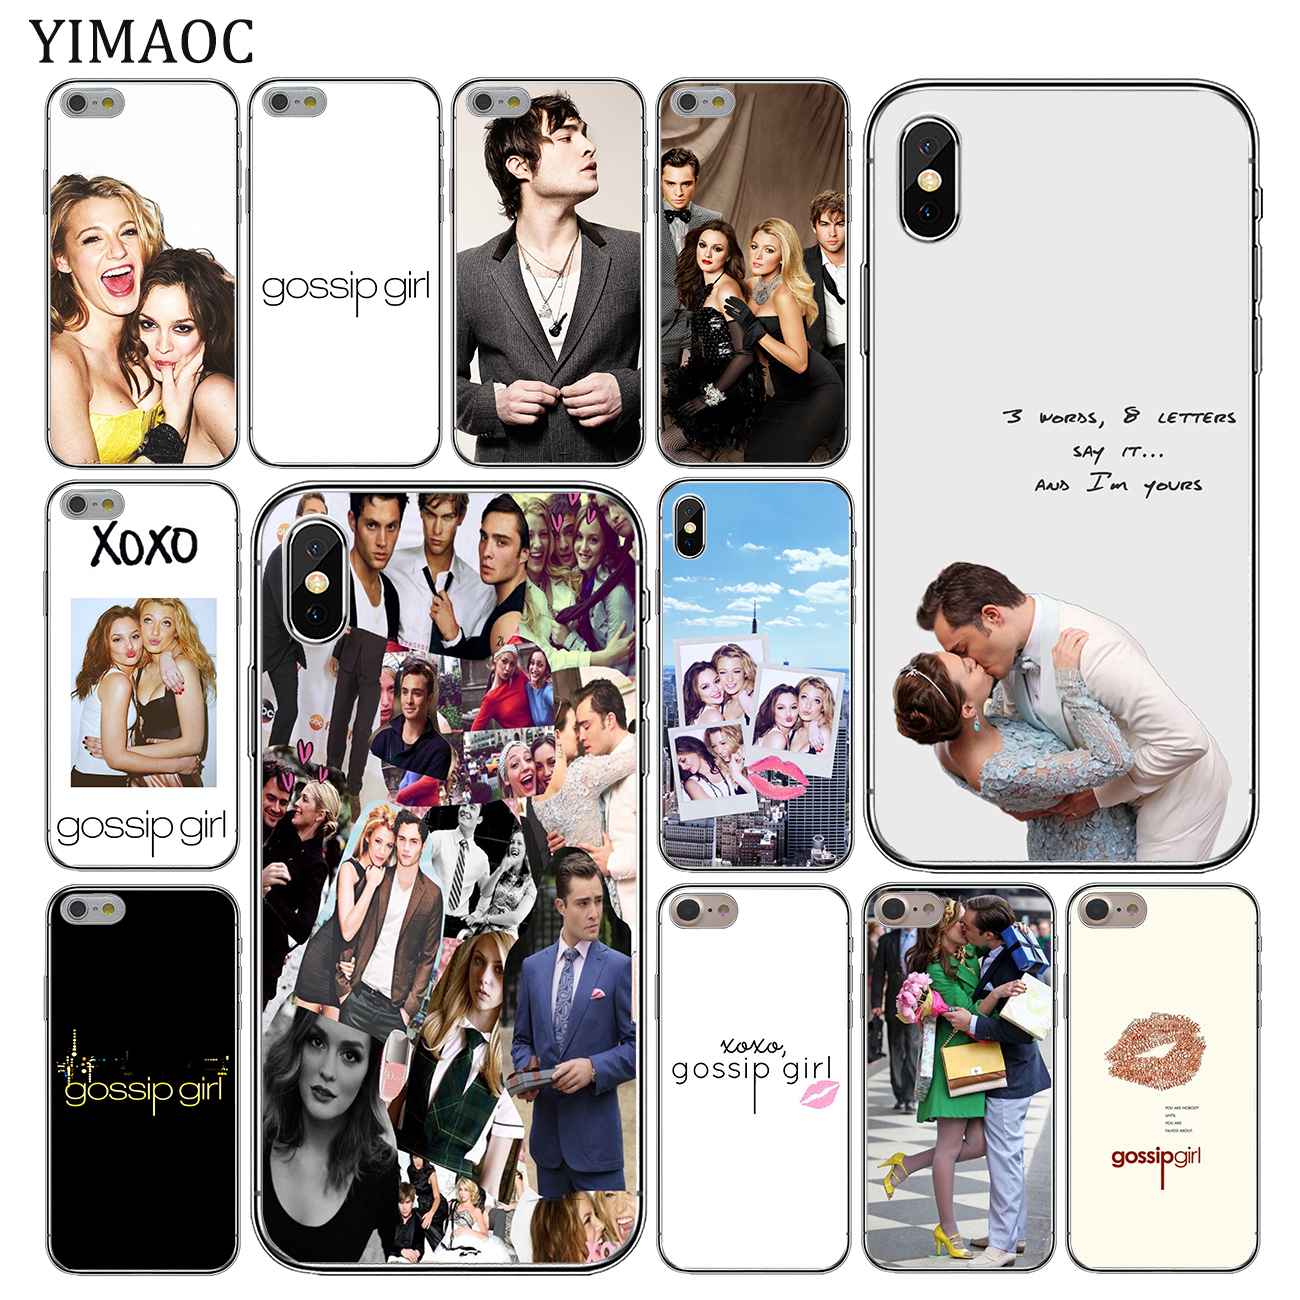 YIMAOC Gossip <font><b>Girl</b></font> Soft Silicone <font><b>Cover</b></font> Case <font><b>for</b></font> Apple <font><b>iPhone</b></font> 11 Pro X XR XS Max <font><b>6</b></font> 6S 7 8 Plus 5 5S SE 10 TPU Phone Cases image